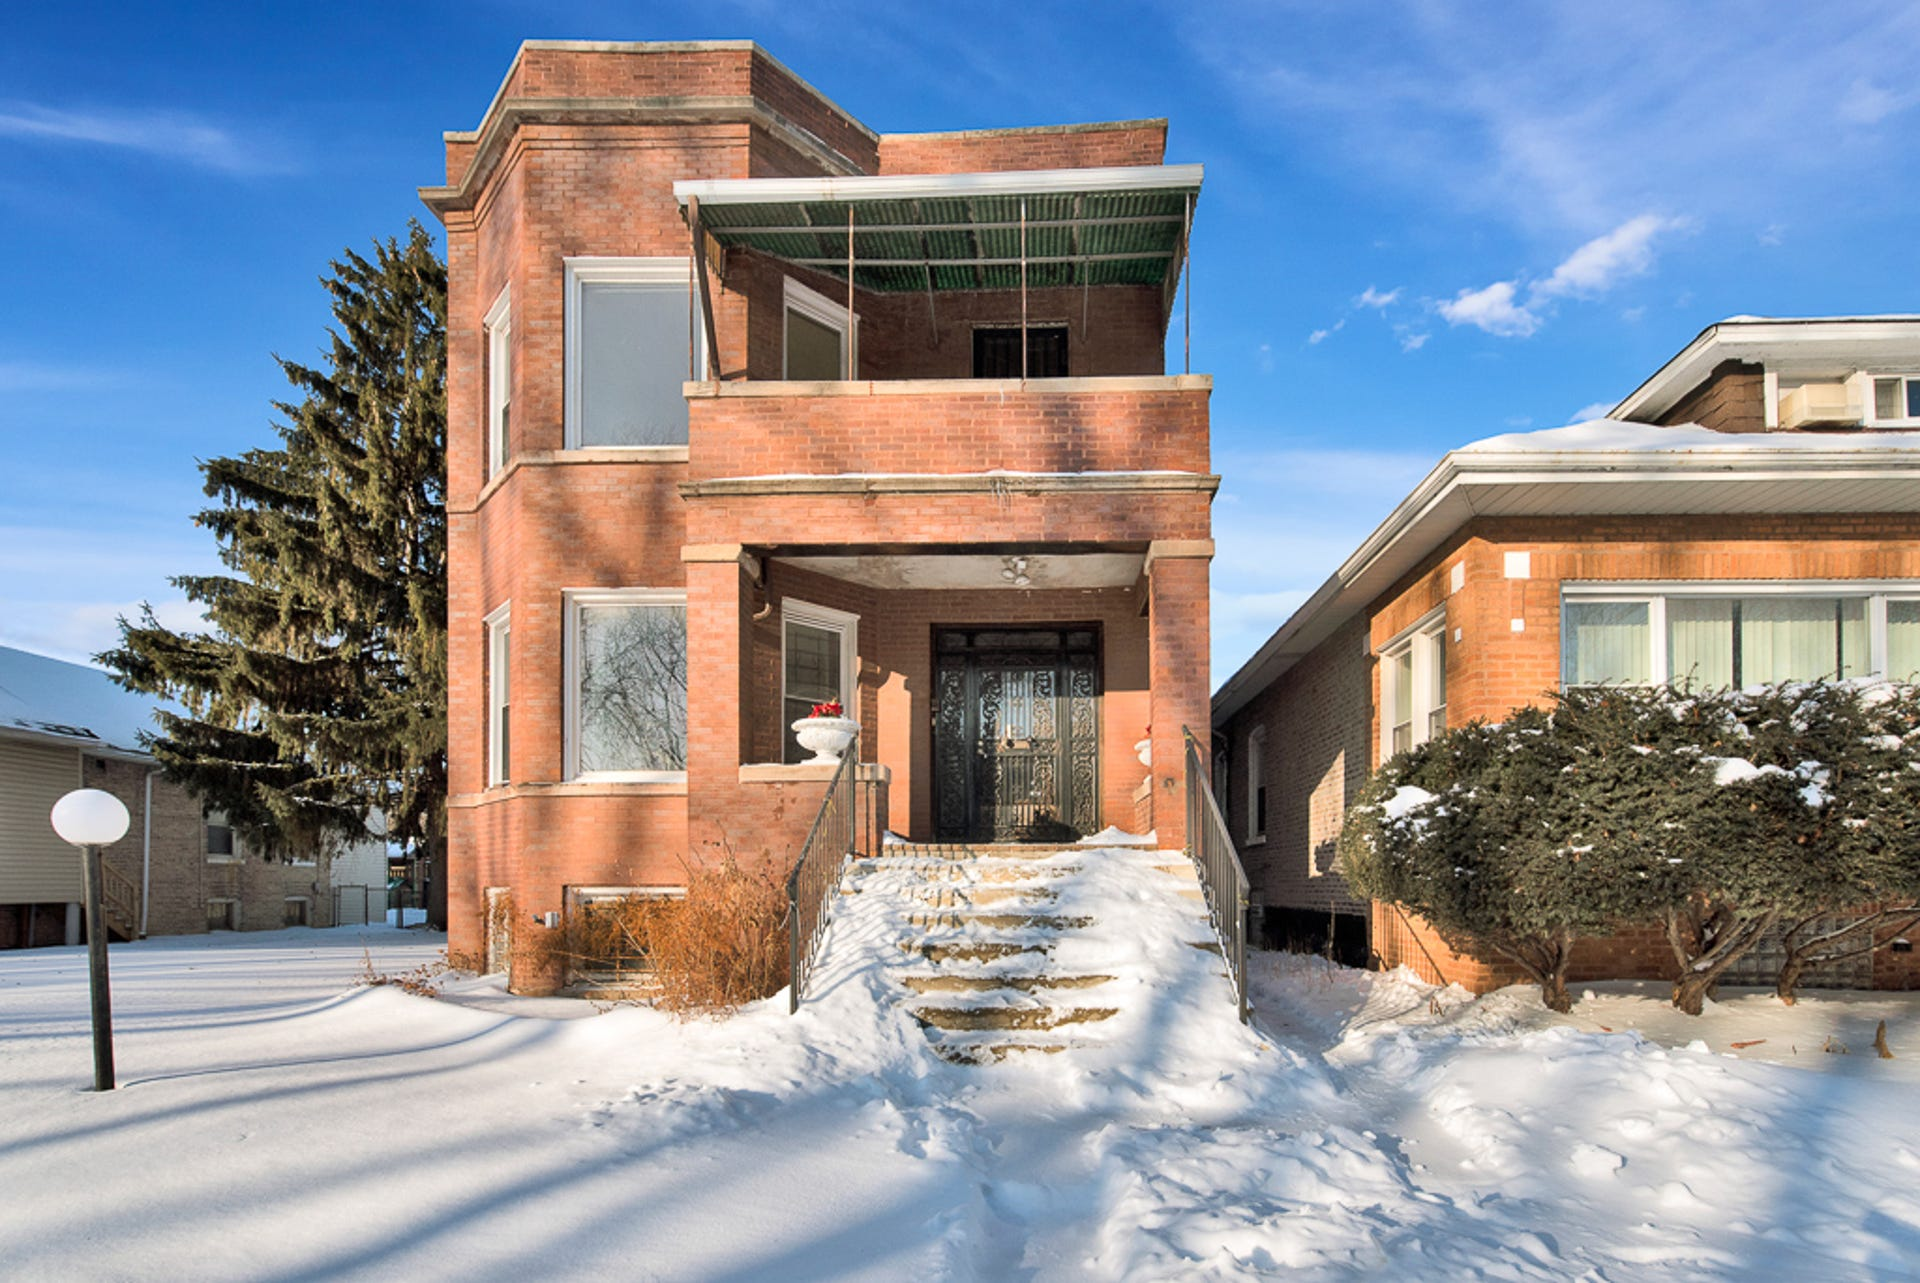 Al Capone home for sale in Chicago: See the photos